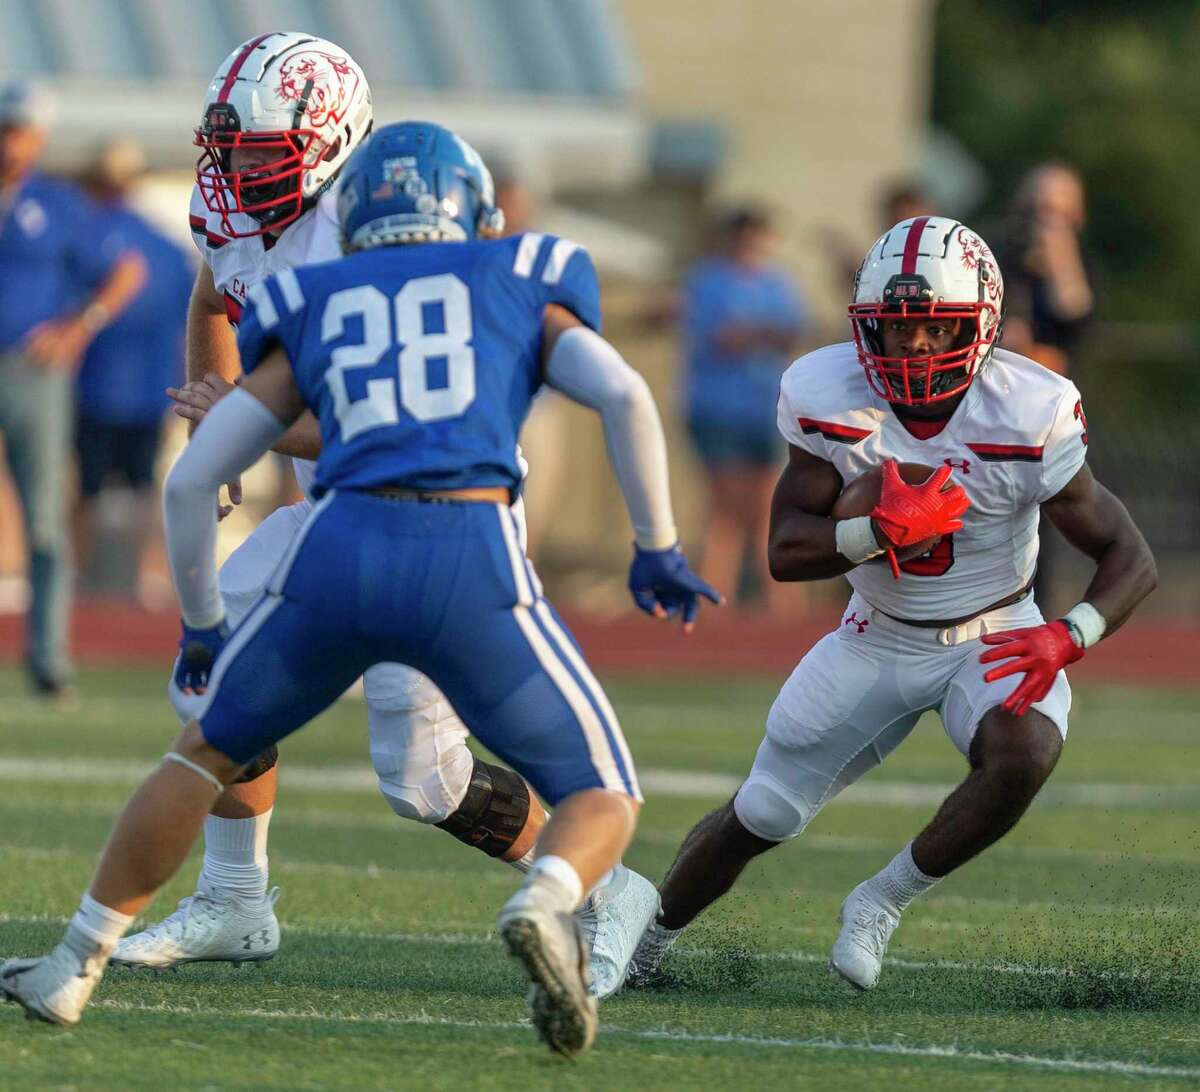 New Braunfels Canyon running back Cameron Bibins, right, runs for yards Friday night Sept. 10, 2021 While trying to avoid the Unicorns'' Cade Becvker during the Cougars' game against the New Braunfels Unicorns.